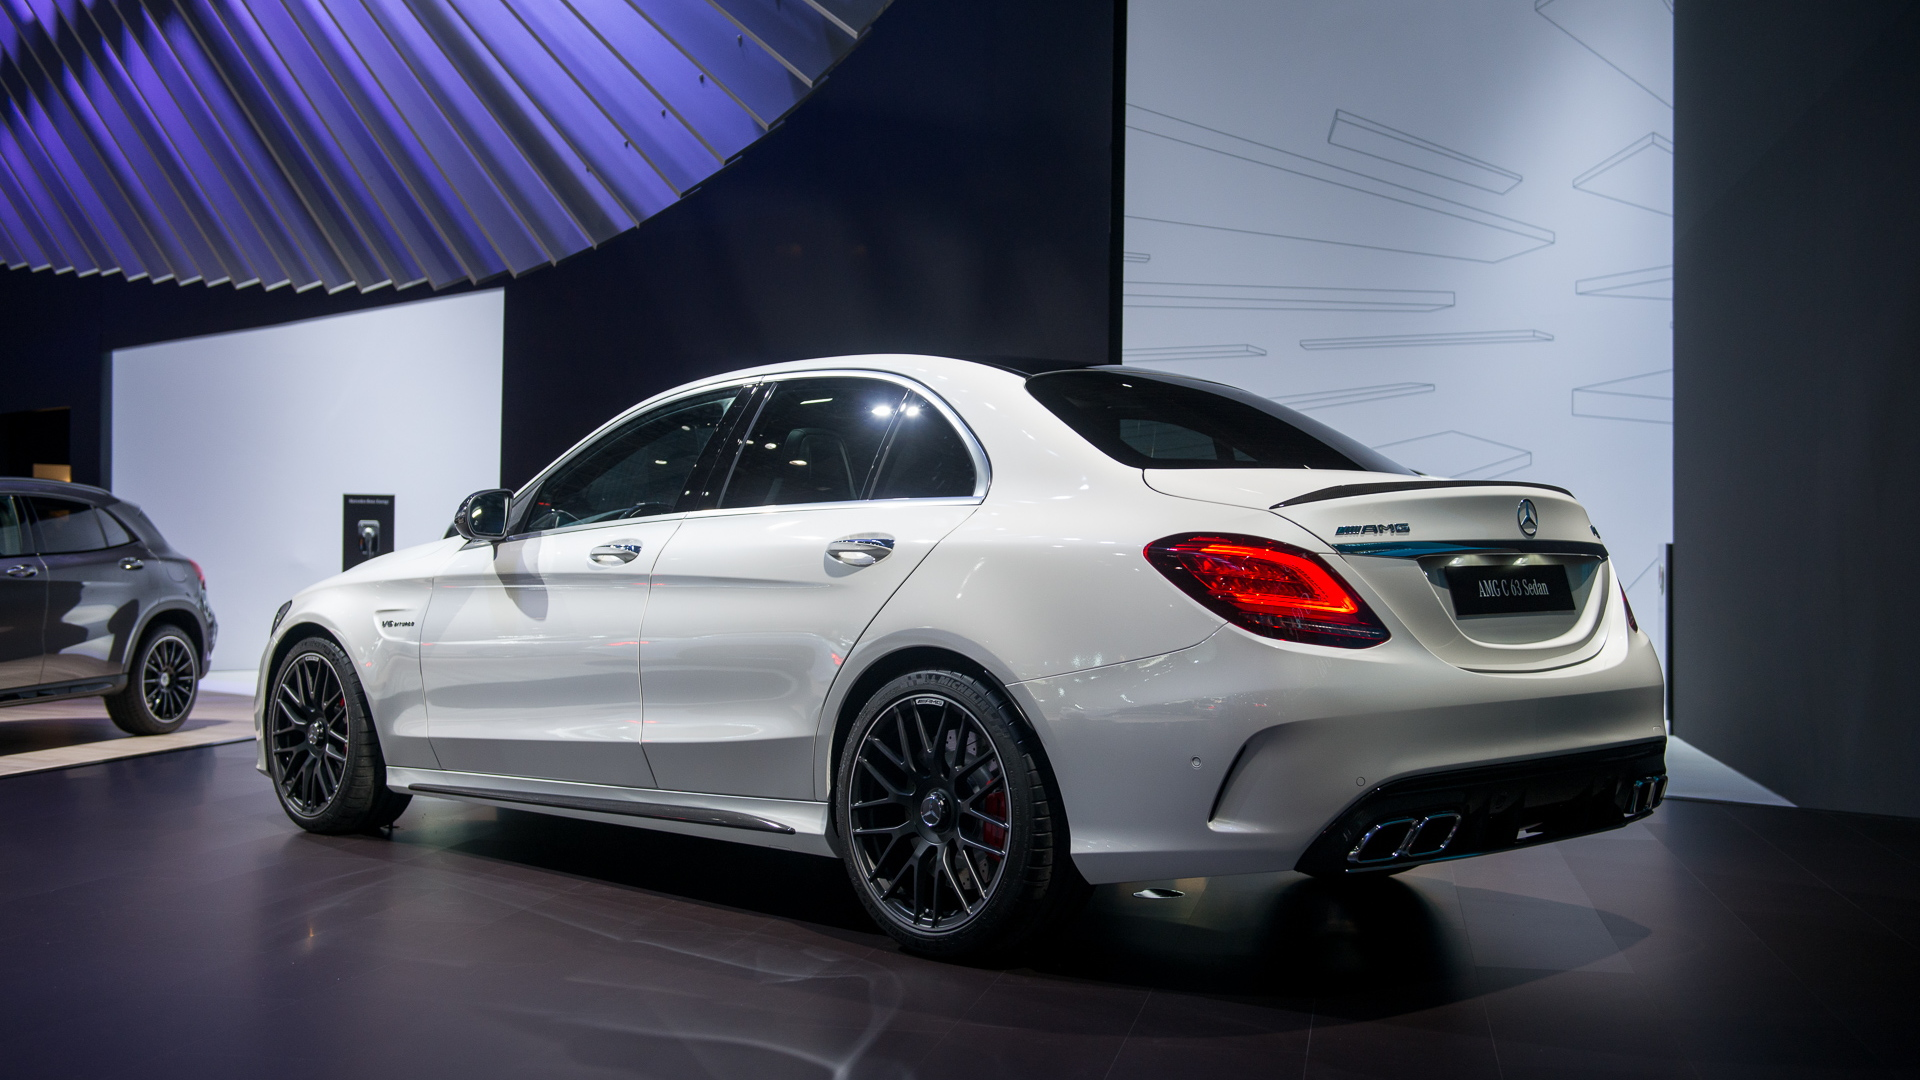 2019 Mercedes Amg C63 Gets Numerous Updates But No Extra Power